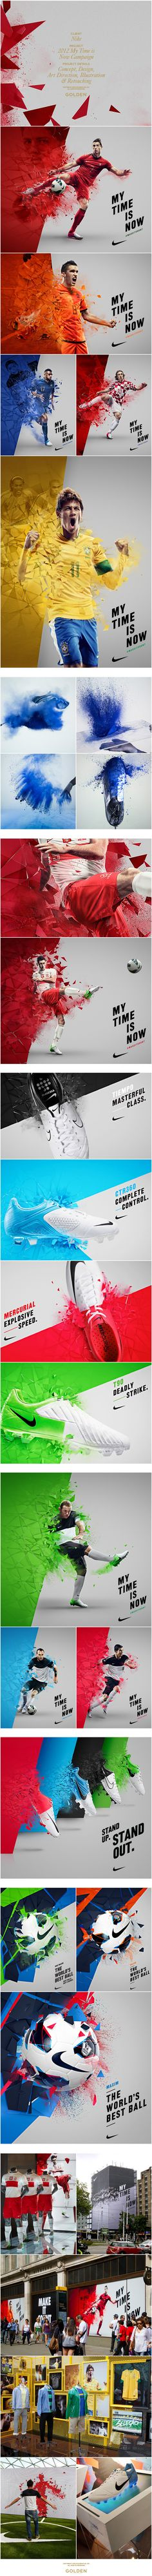 Nike 2012 My Time Is Now Campaign by Golden, via Behance